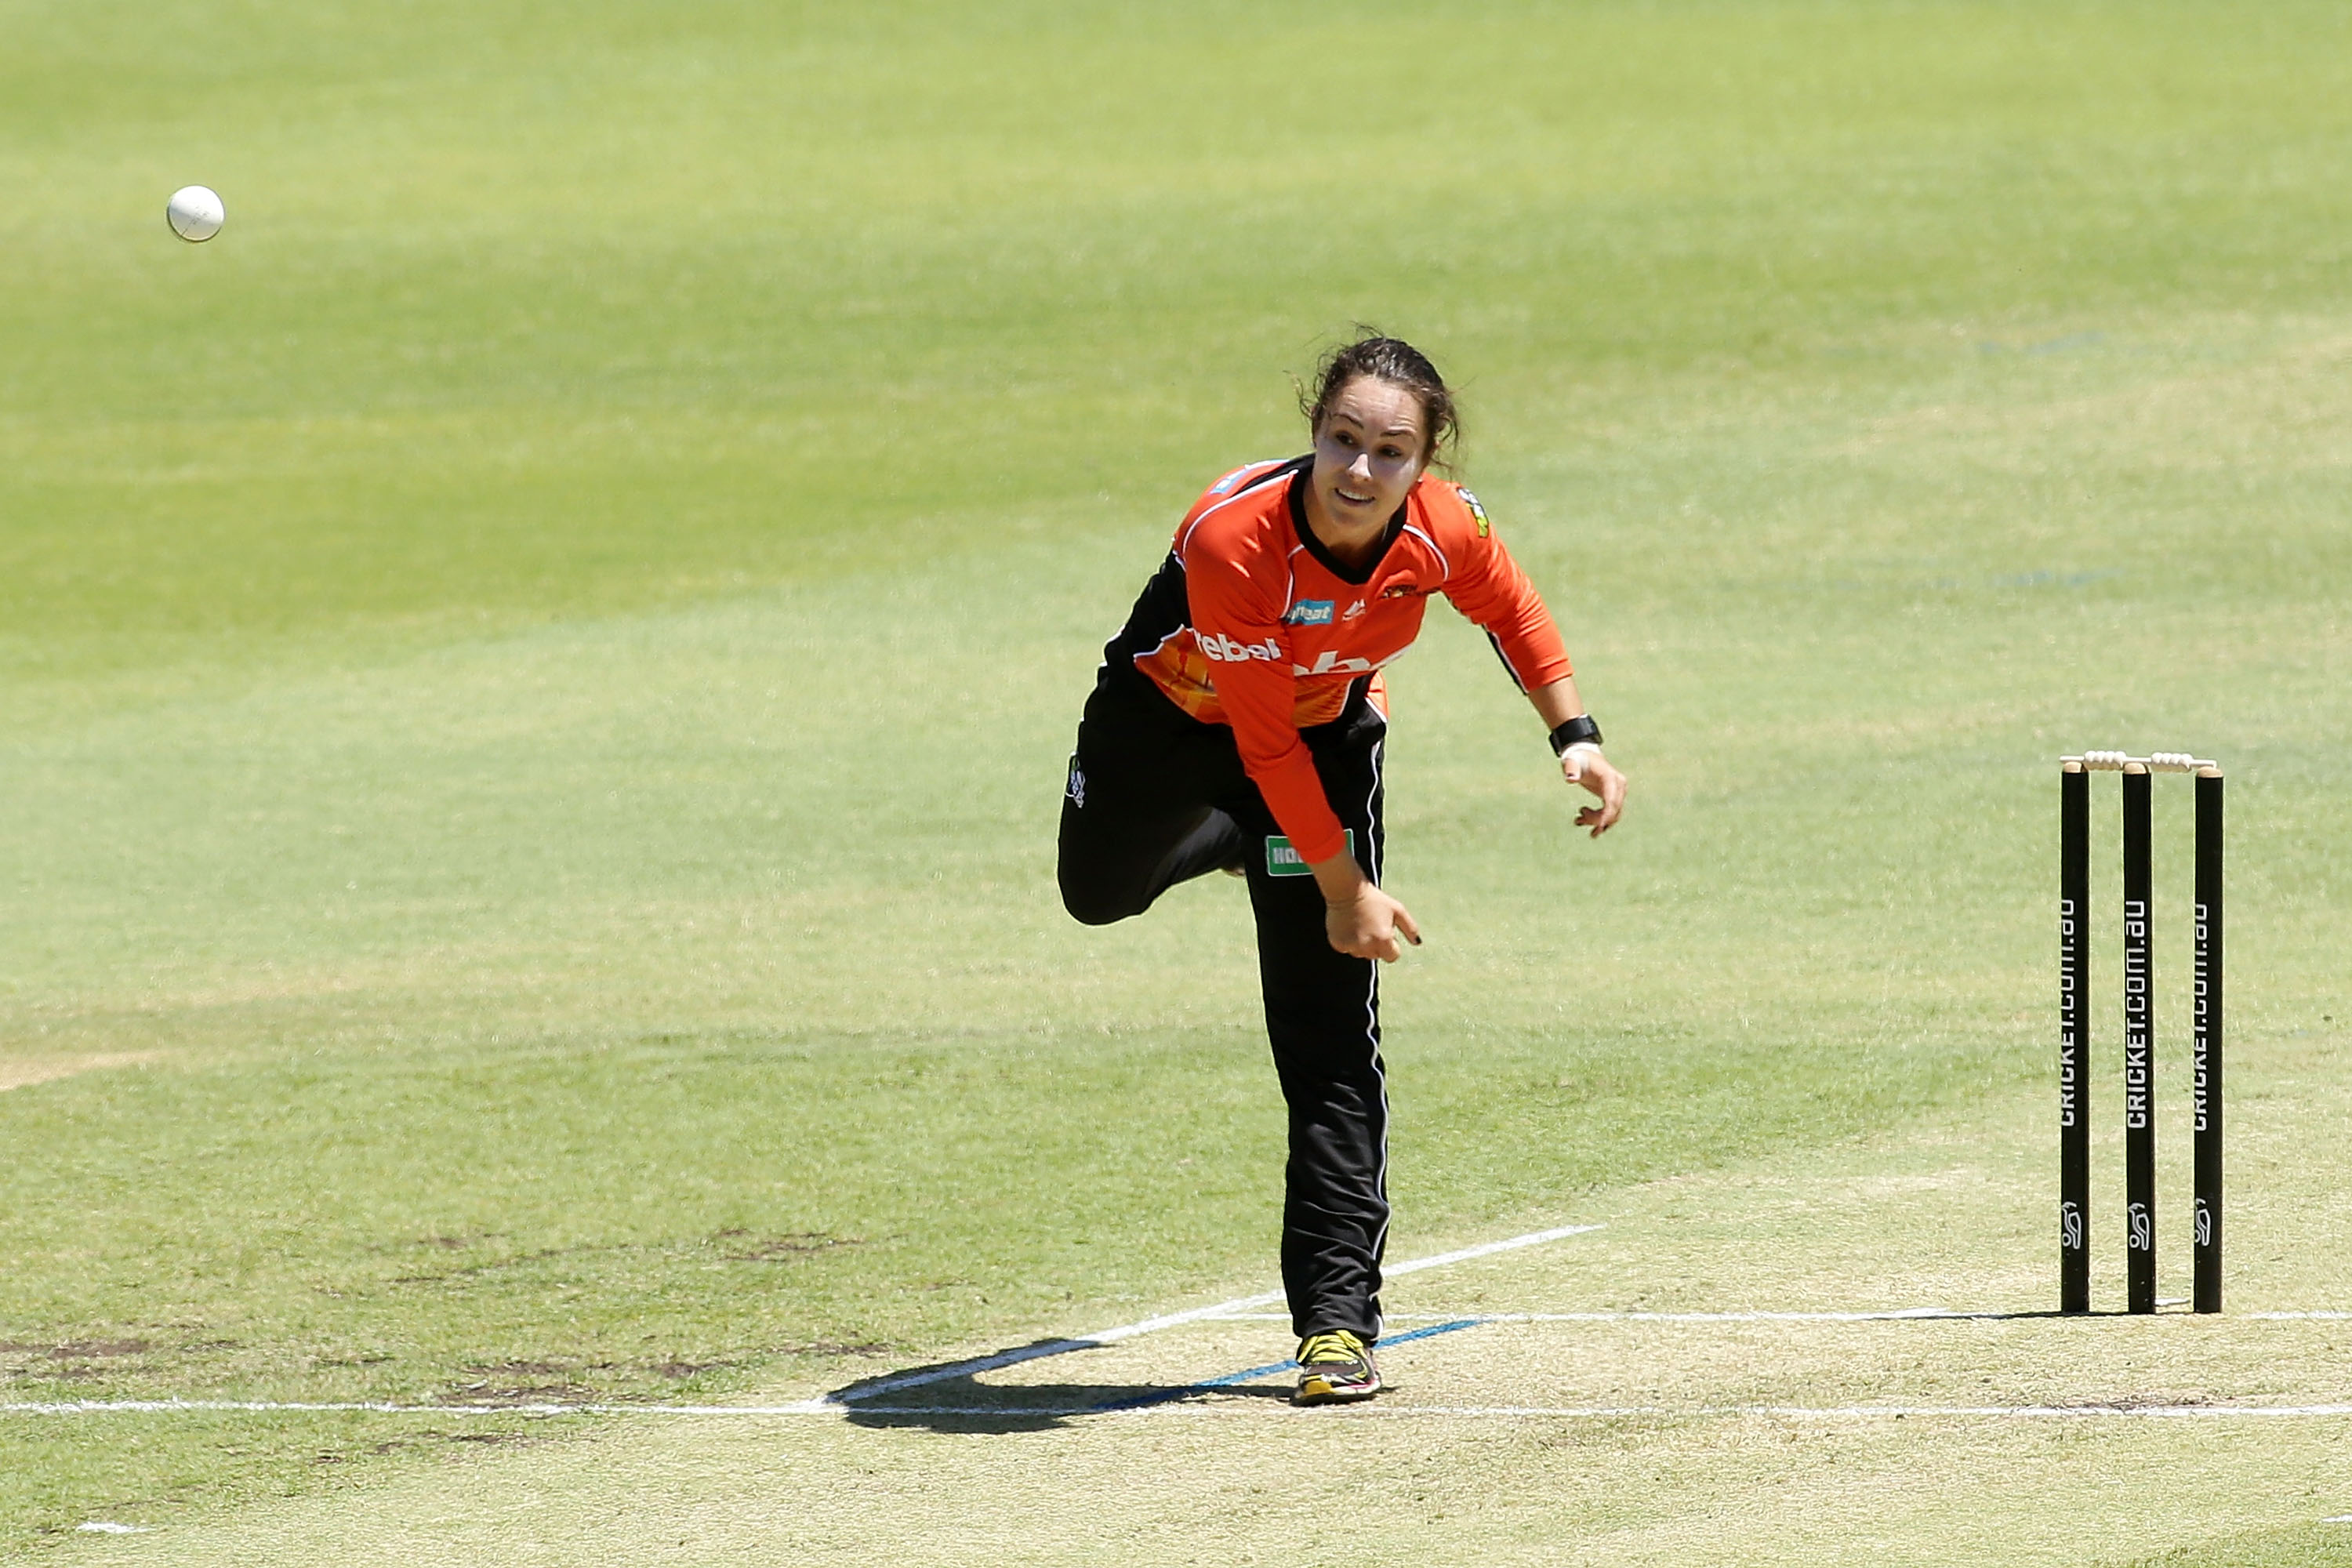 Emma King delivers for the Scorchers.